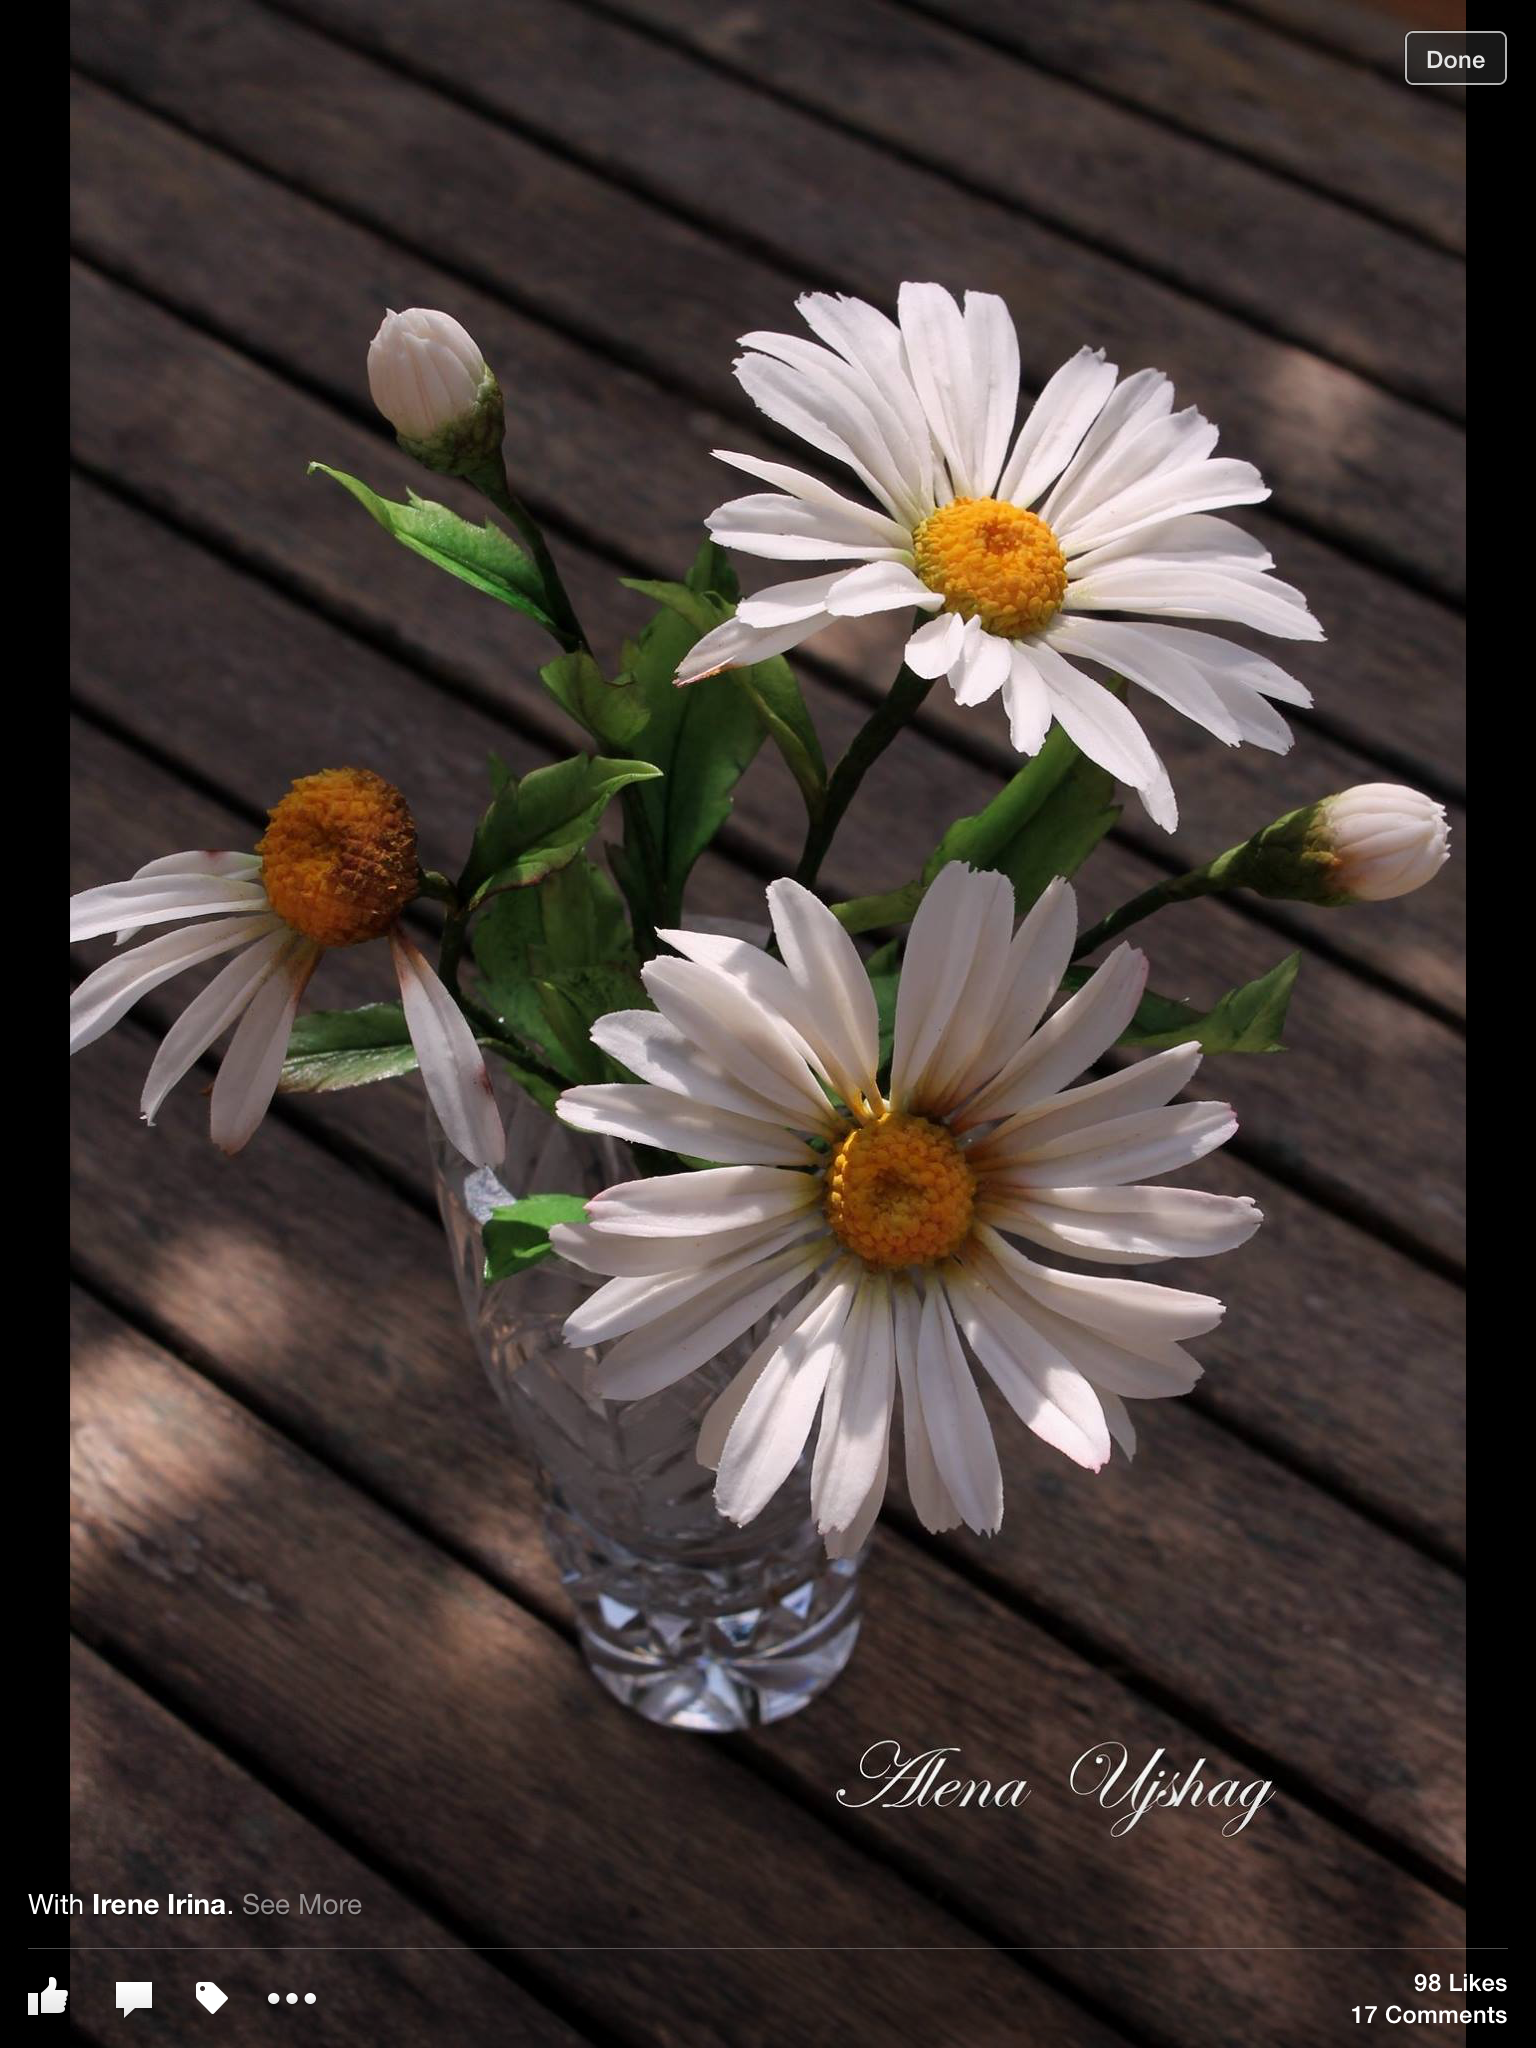 Pin By Mrl7 On Wallpapers 2 Pinterest Sugar Flowers